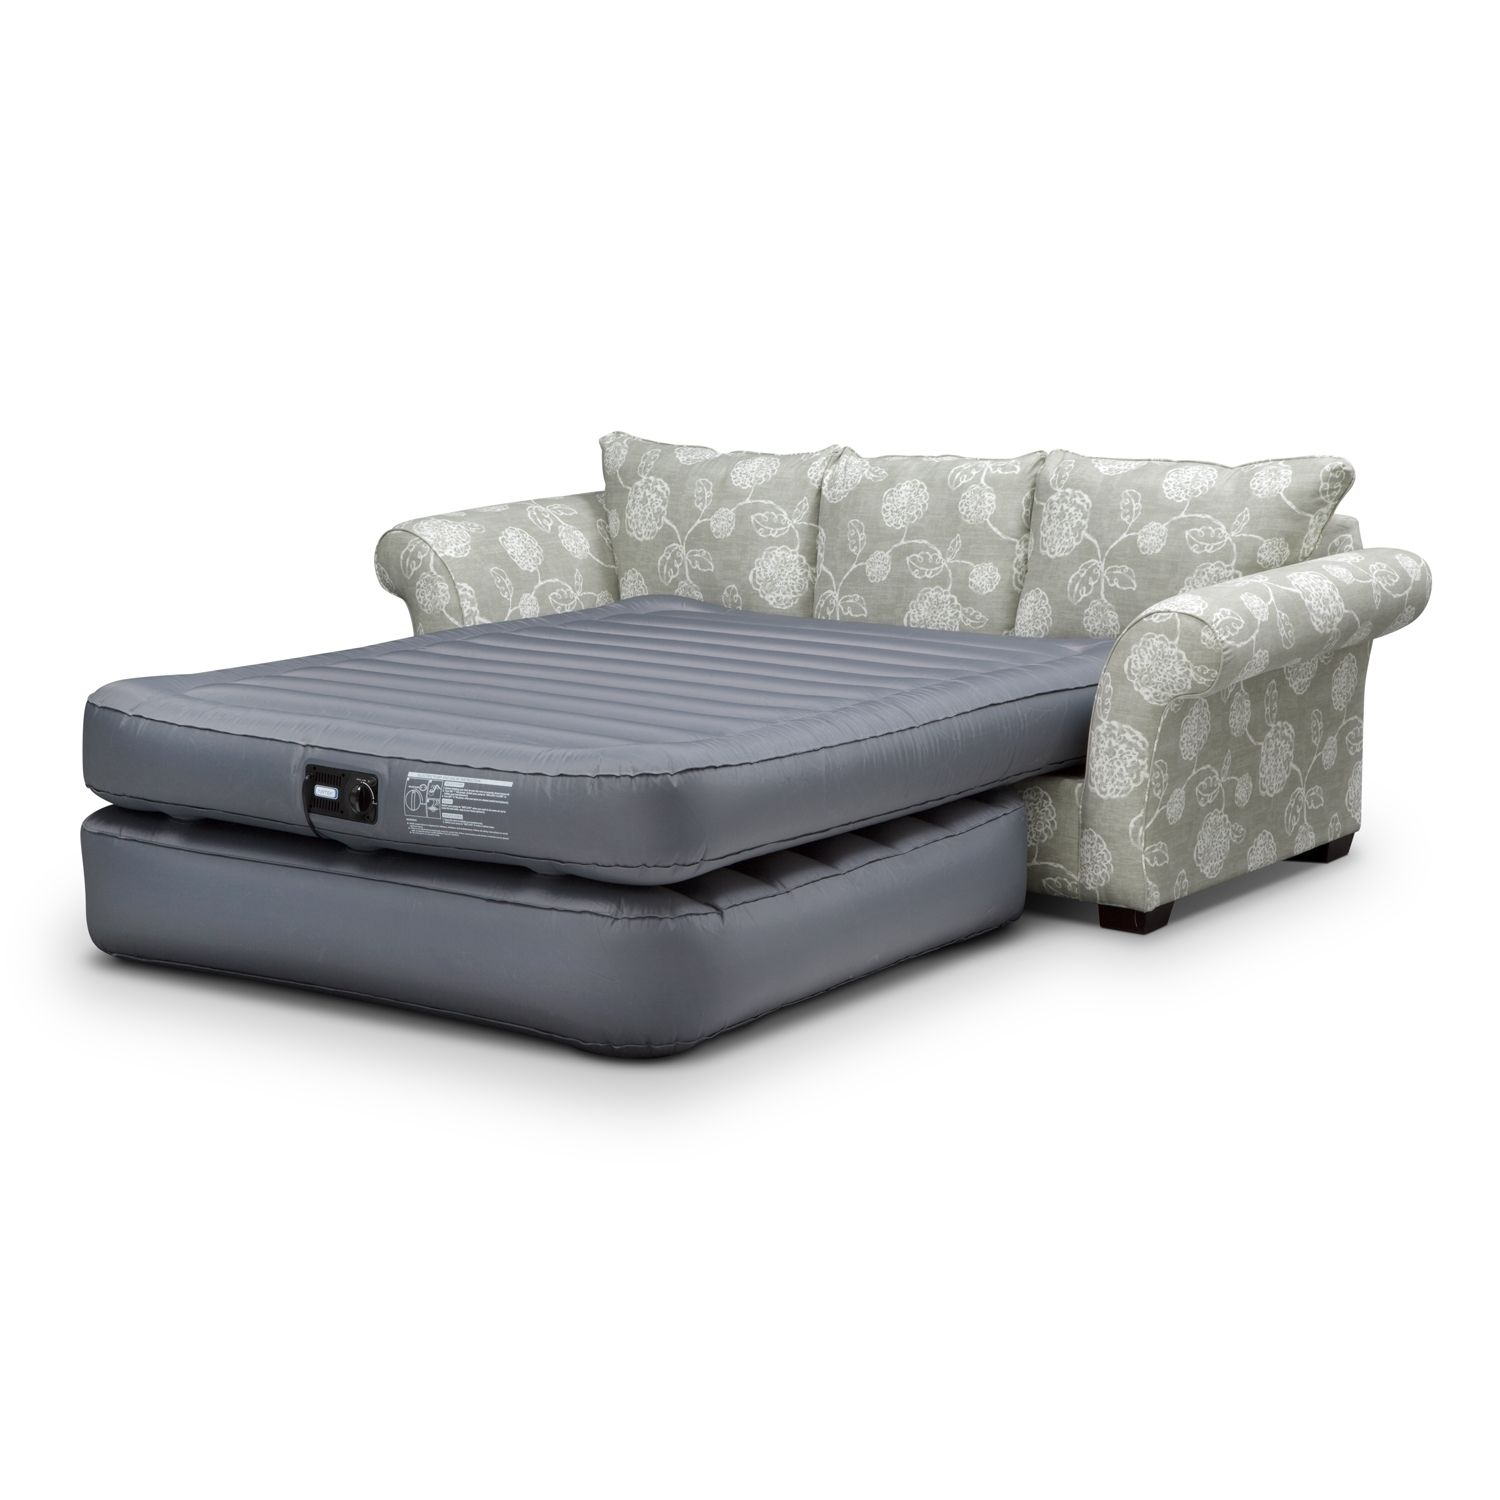 Wonderful Rv Sofa Bed Air Mattress Fjellkjeden For Sizing 1000 X 1000 Rv Air Sofa Bed    Smaller Living Spaces And Increased Demand Have Induced Couch  Manufacturers T